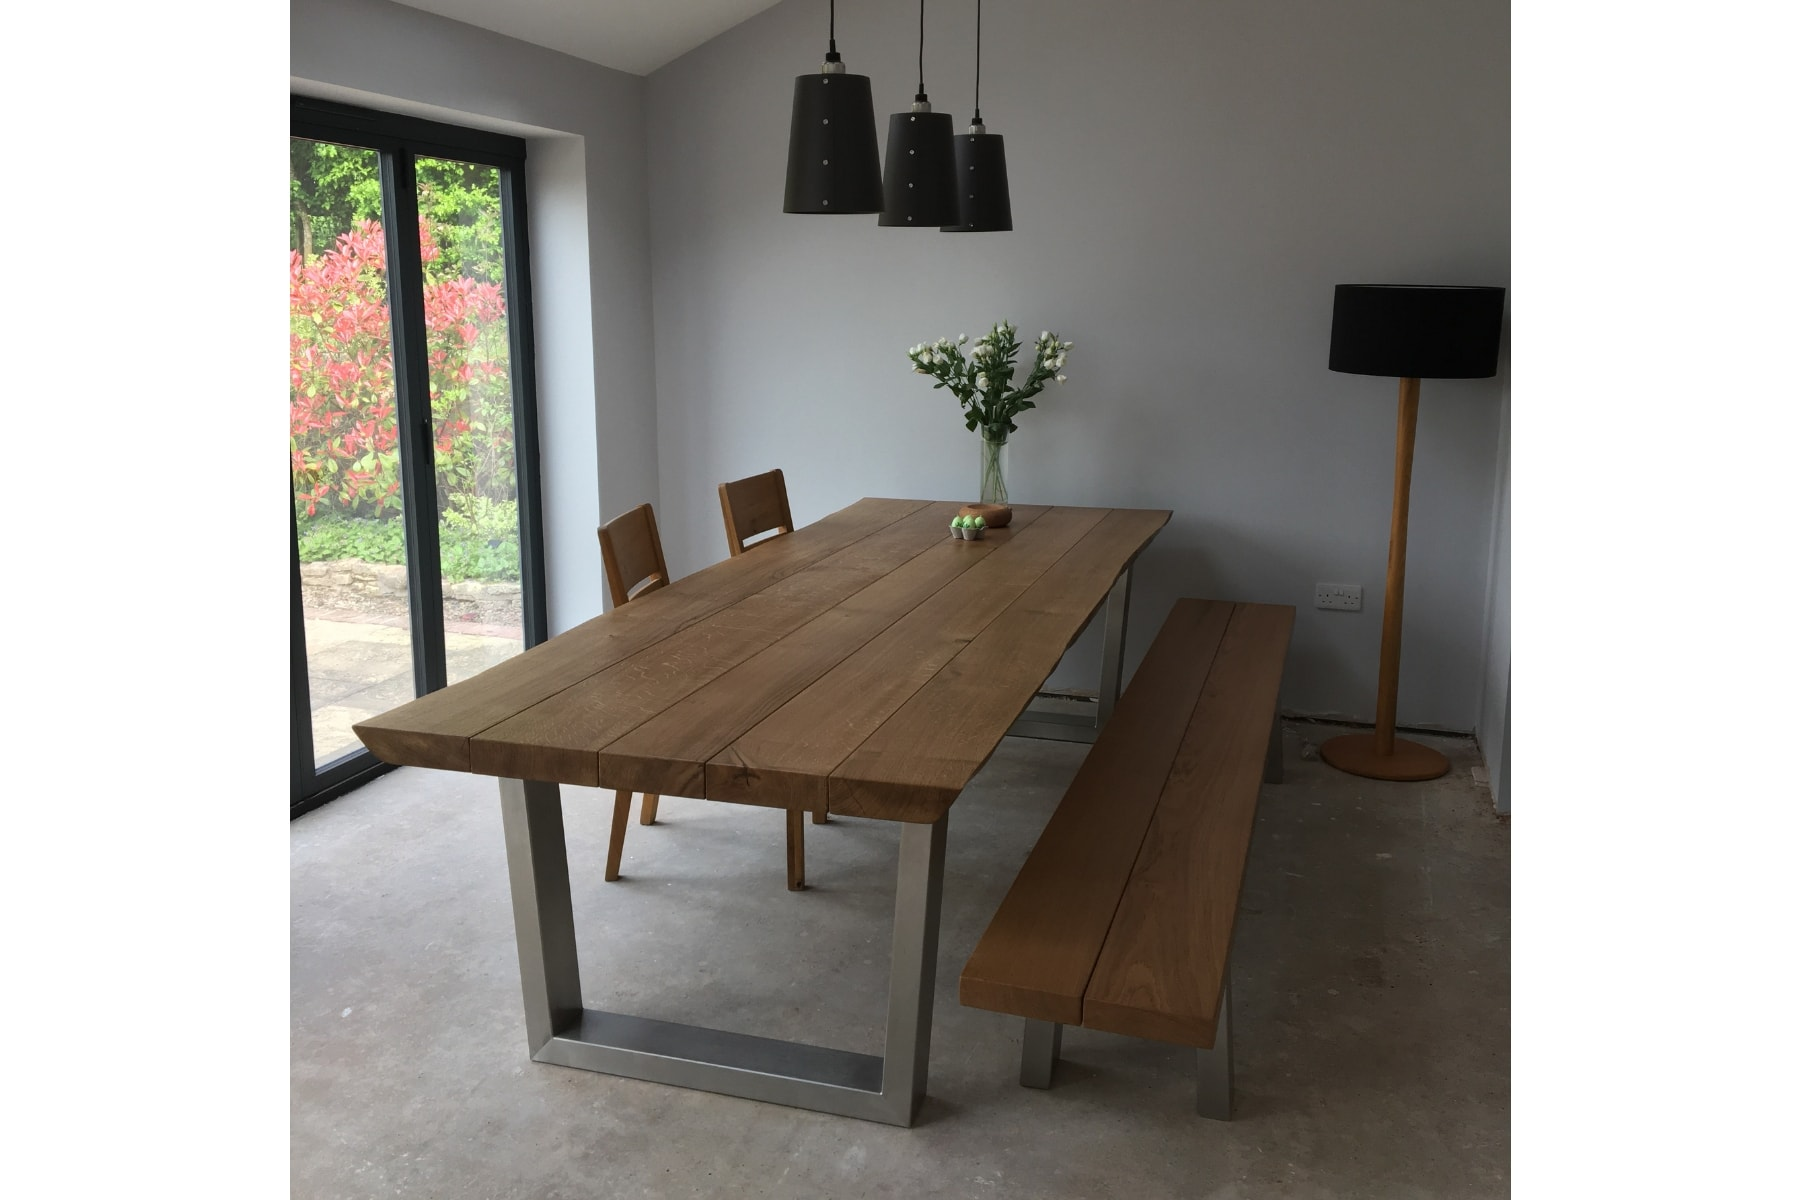 Waney edge dining table project 475 Abacus Tables image 1